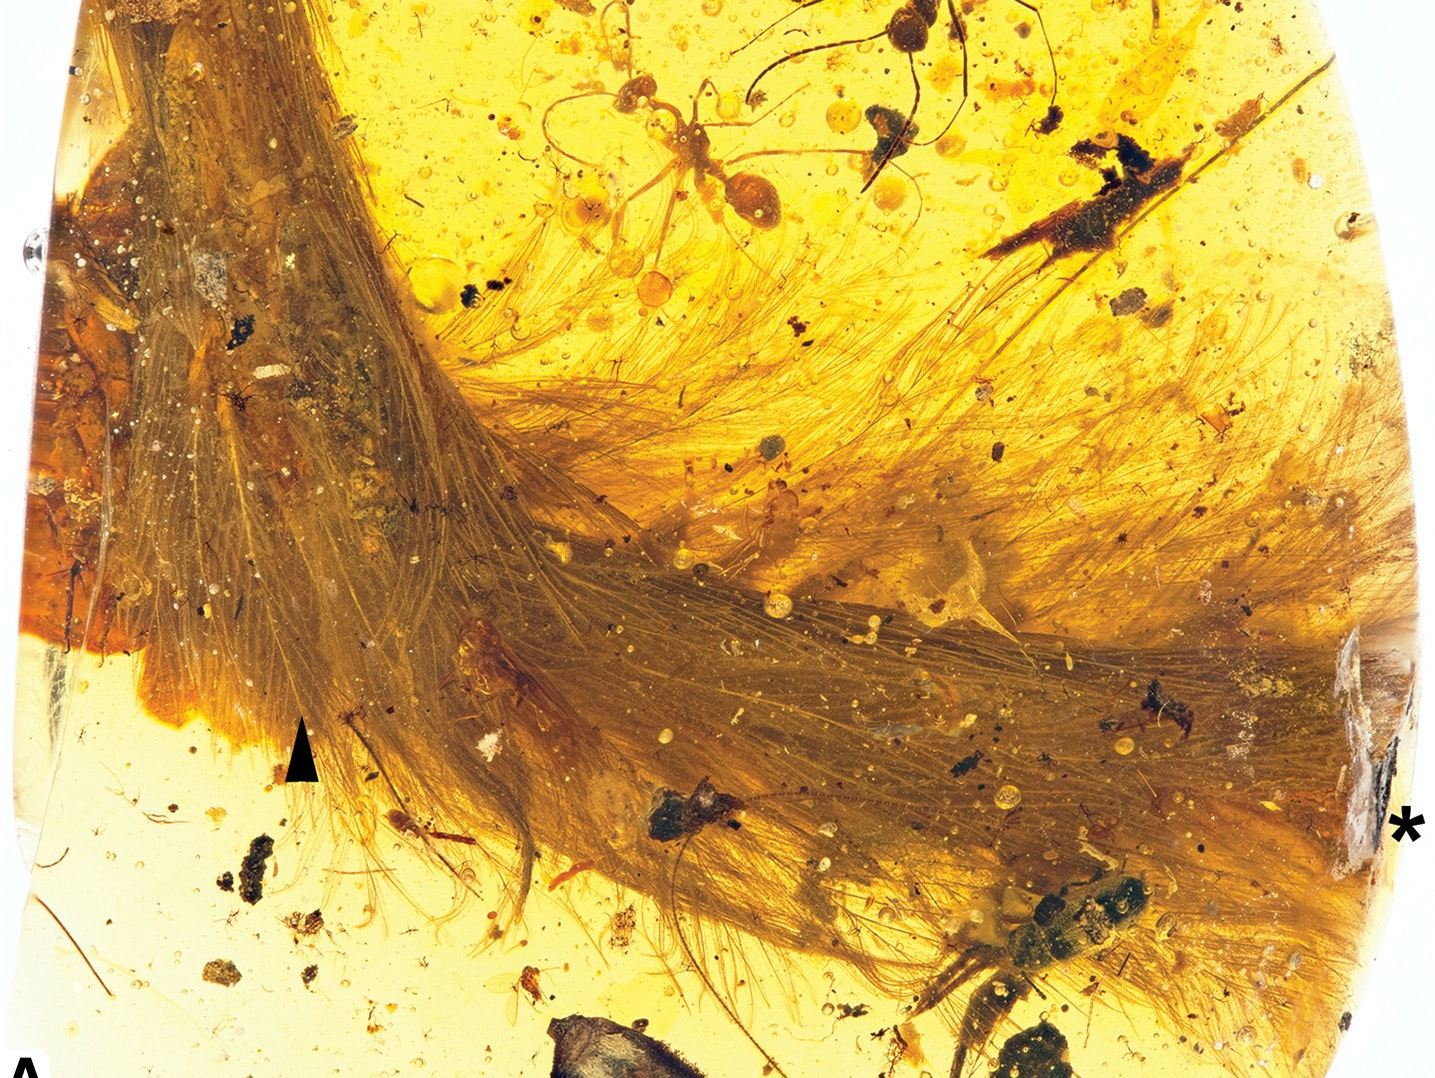 'Jurassic Park' Predicted This Dinosaur Tail Stuck in Amber